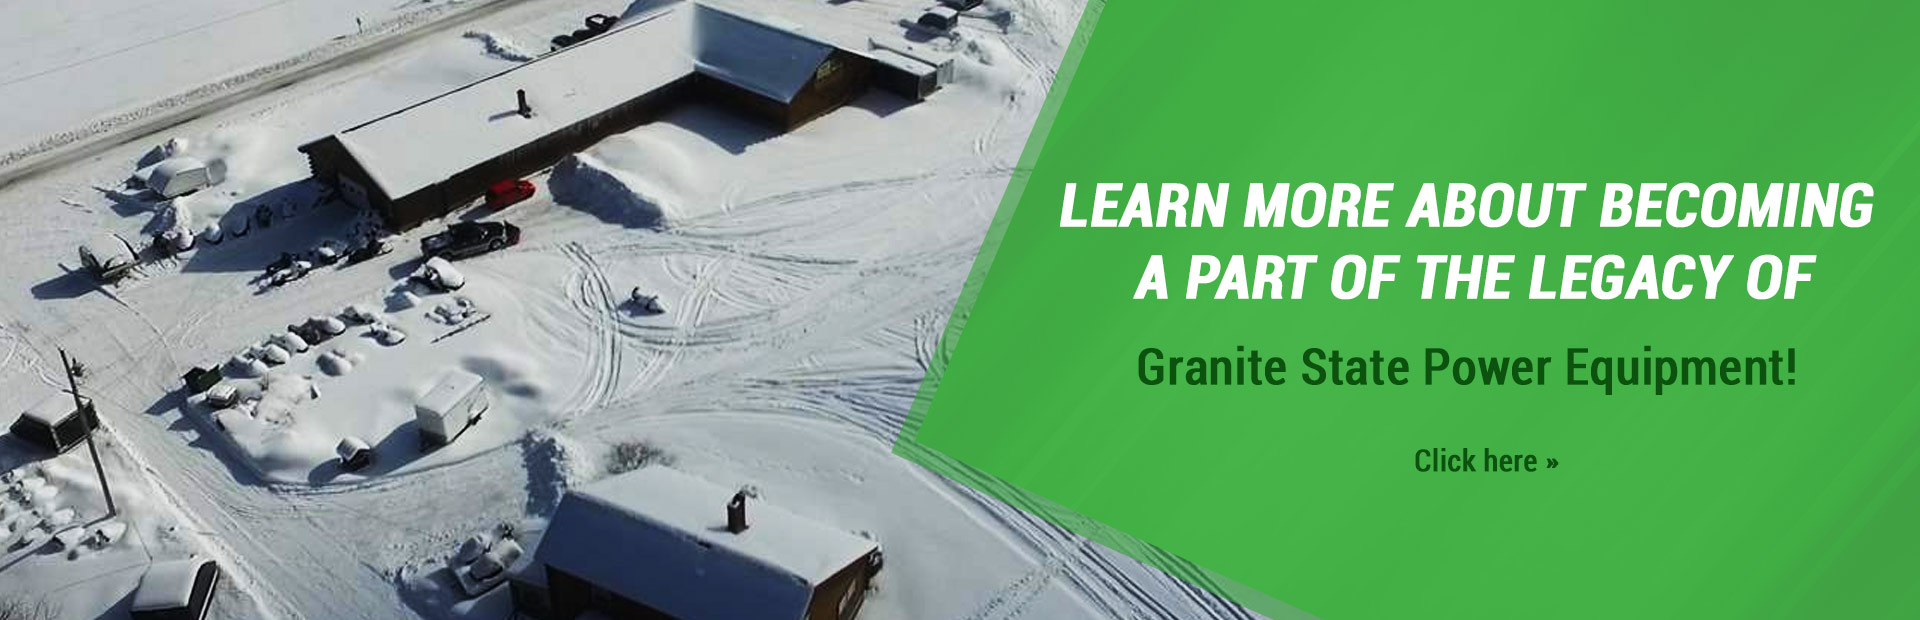 Learn more about becoming a part of the legacy of Granite State Power Equipment!